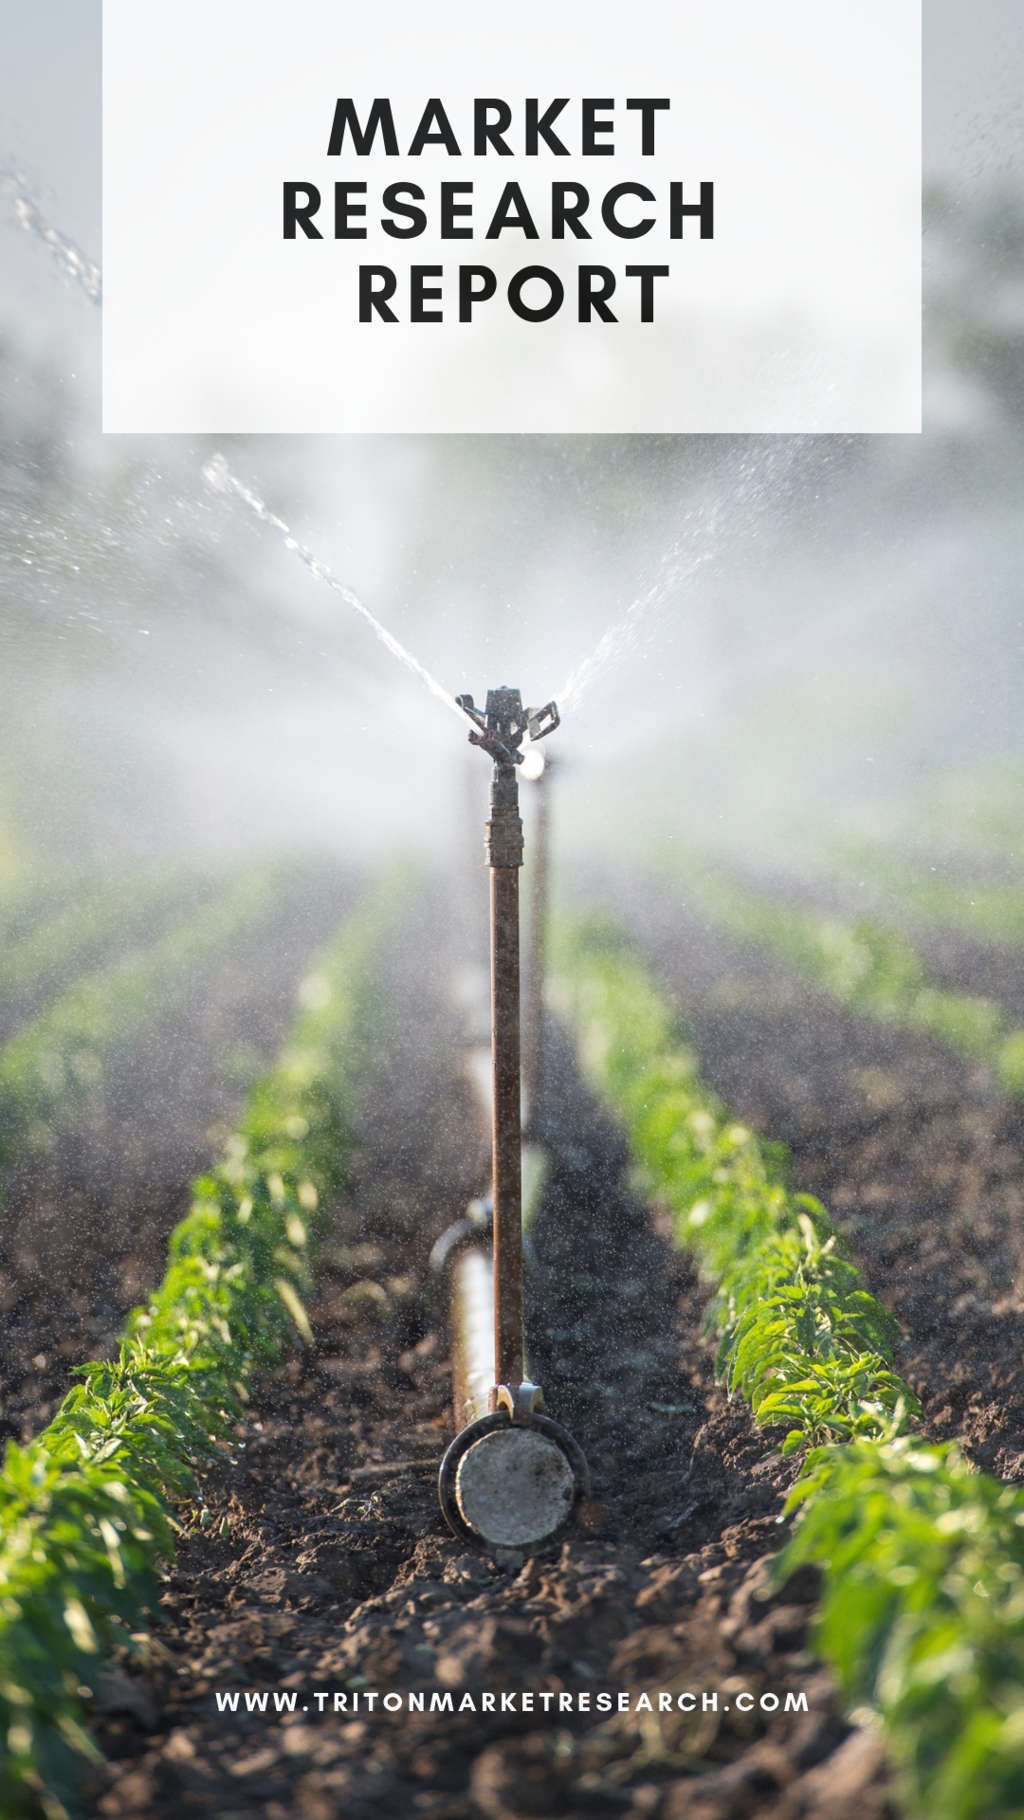 EUROPE MICRO IRRIGATION SYSTEMS MARKET 2021-2028